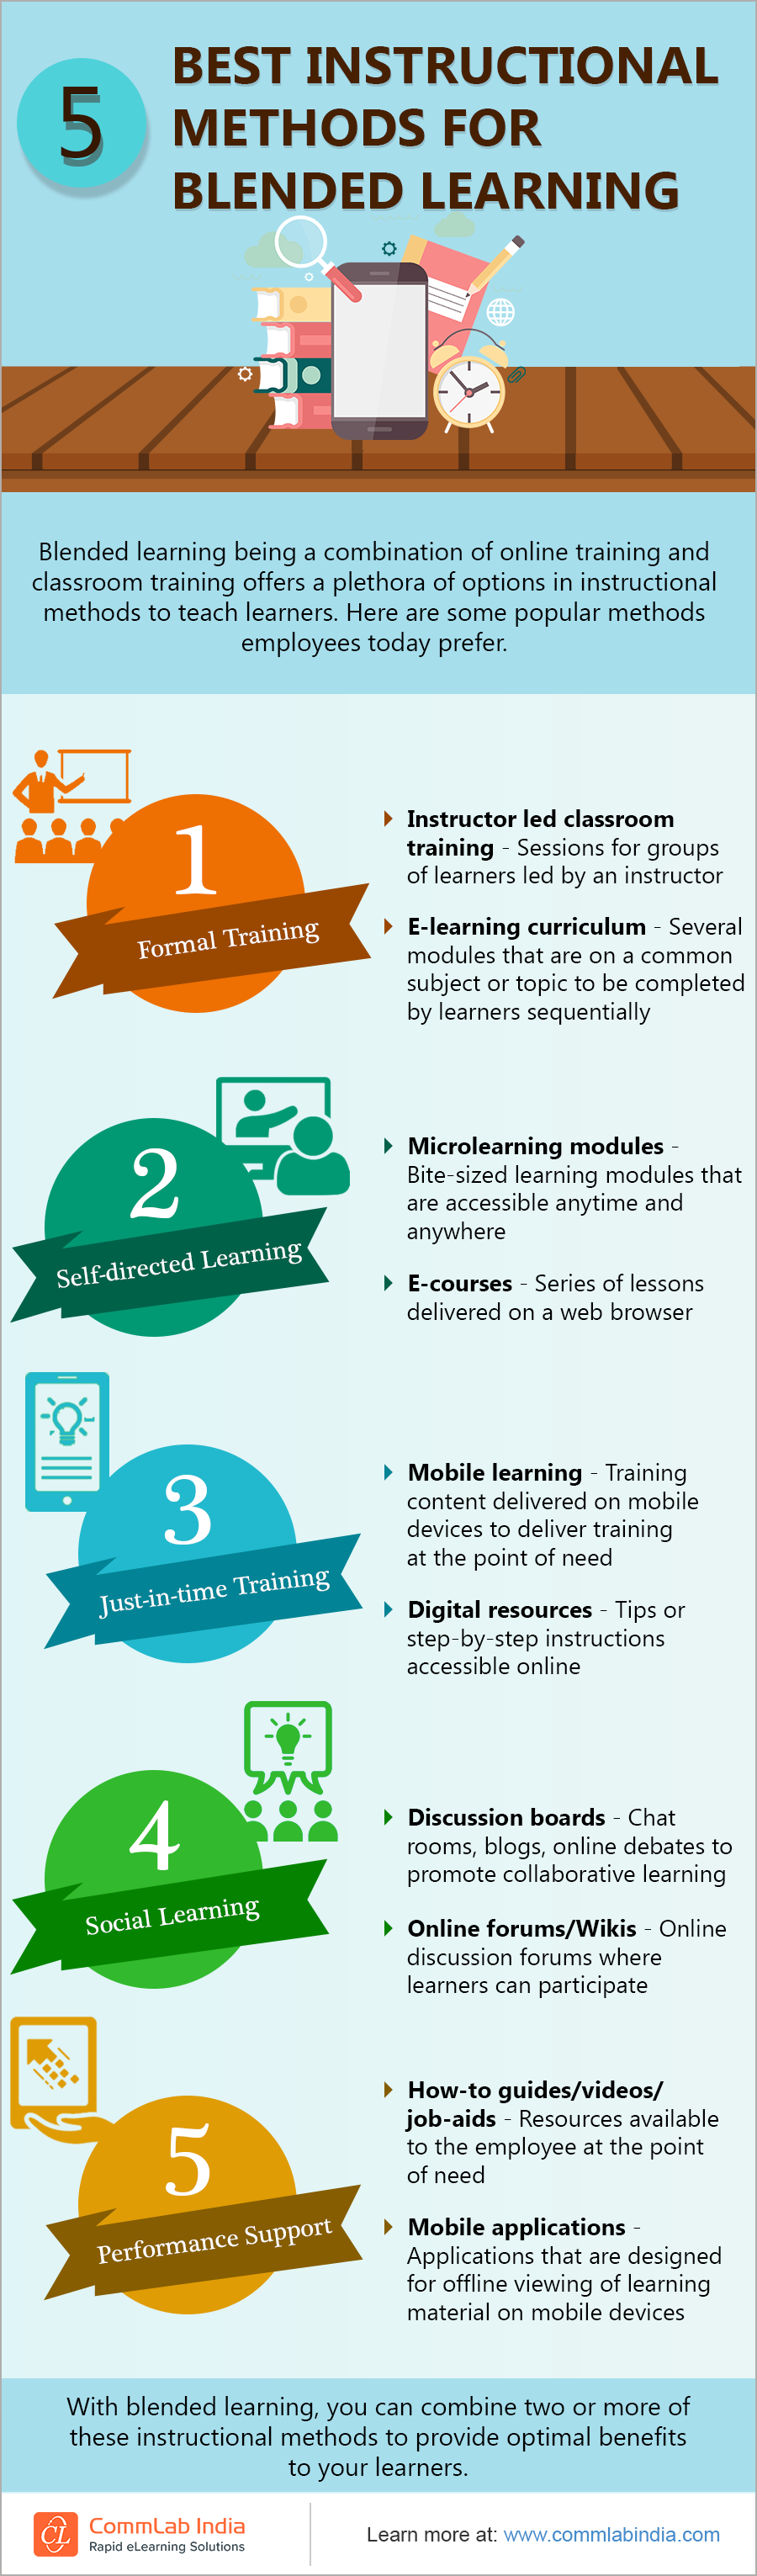 5 Best Instructional Methods for Blended Learning [Infographic]